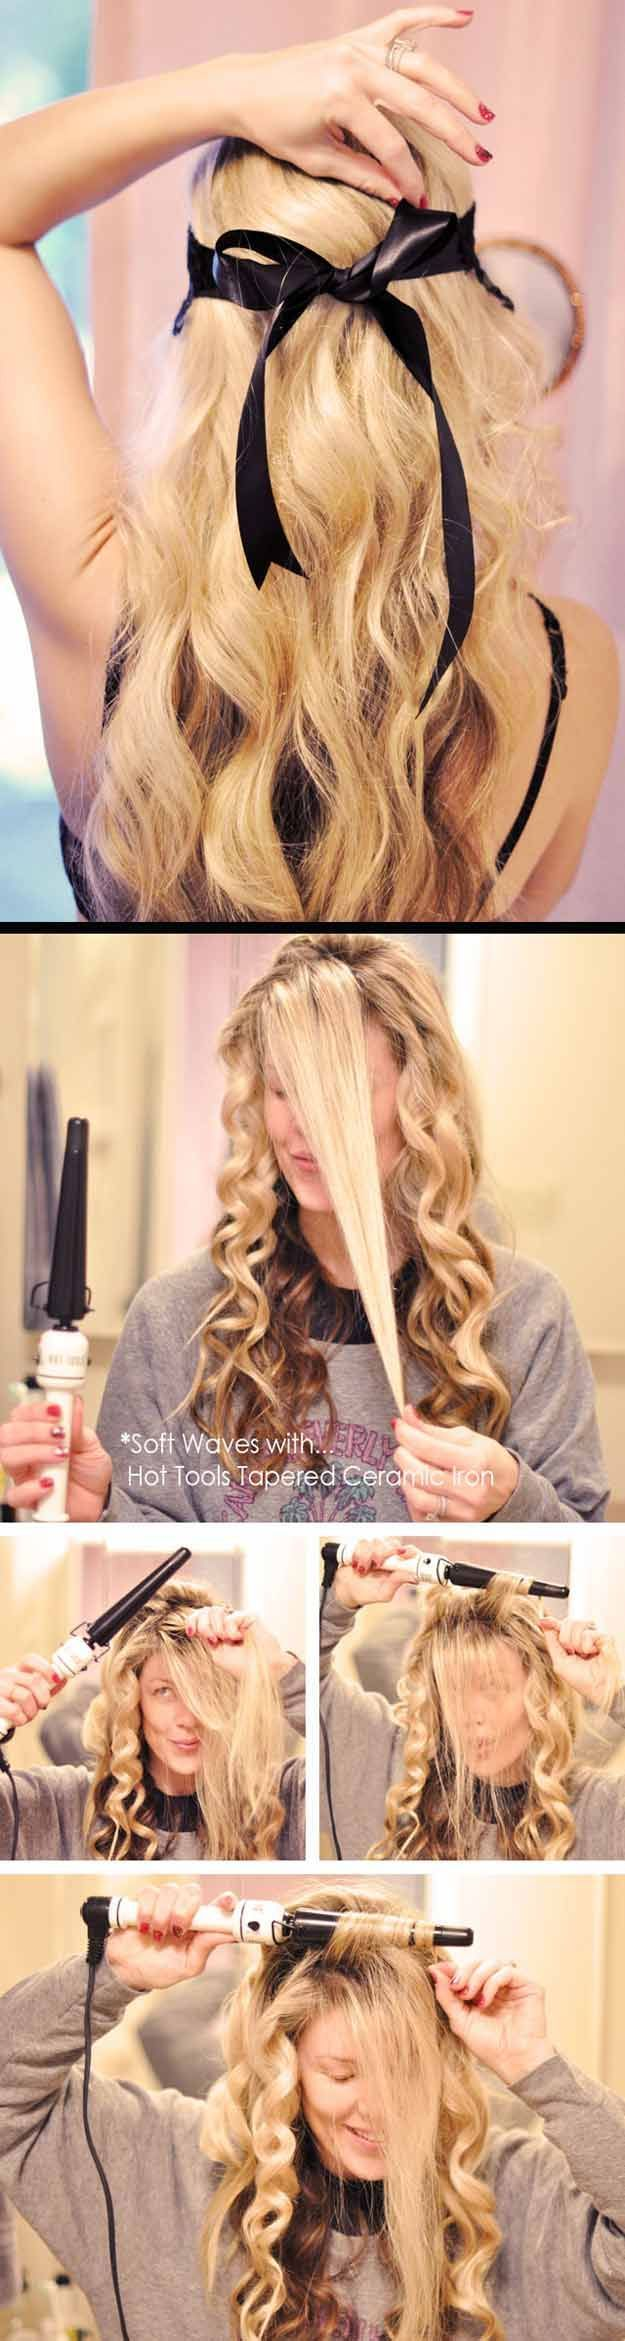 how to keep my hair wavy